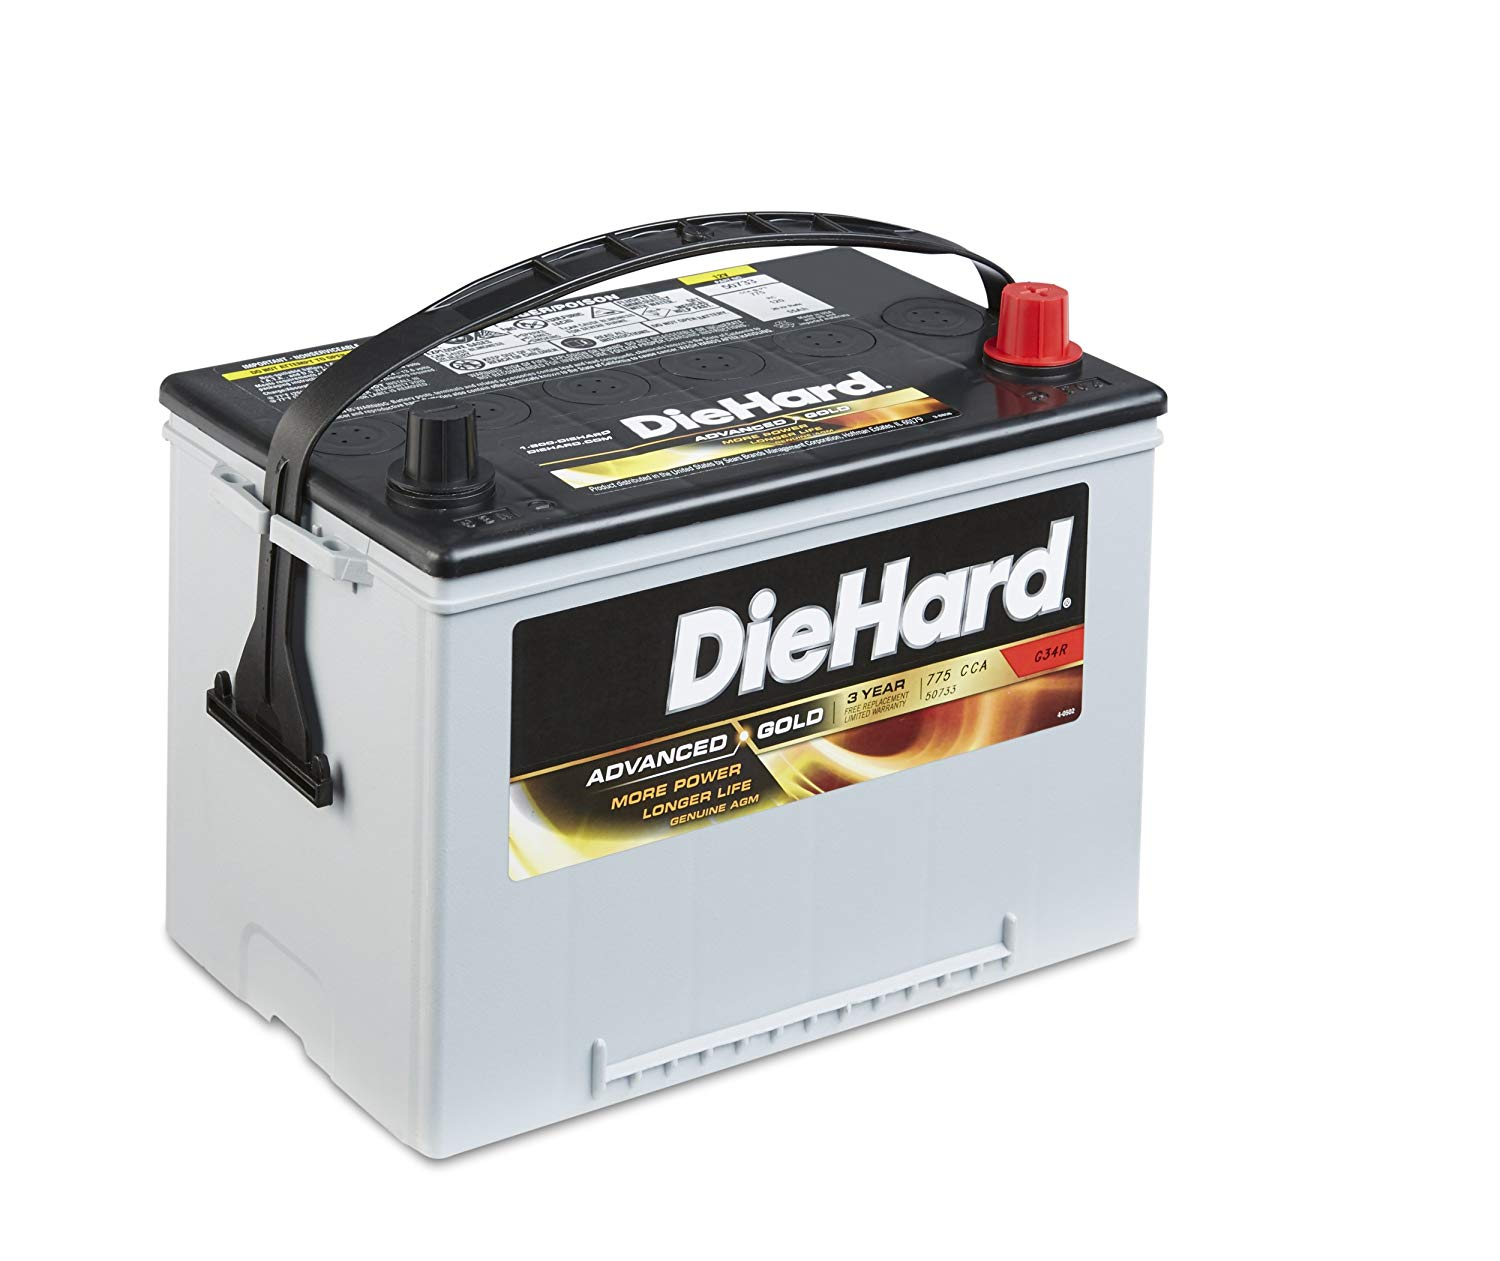 die hard truck battery